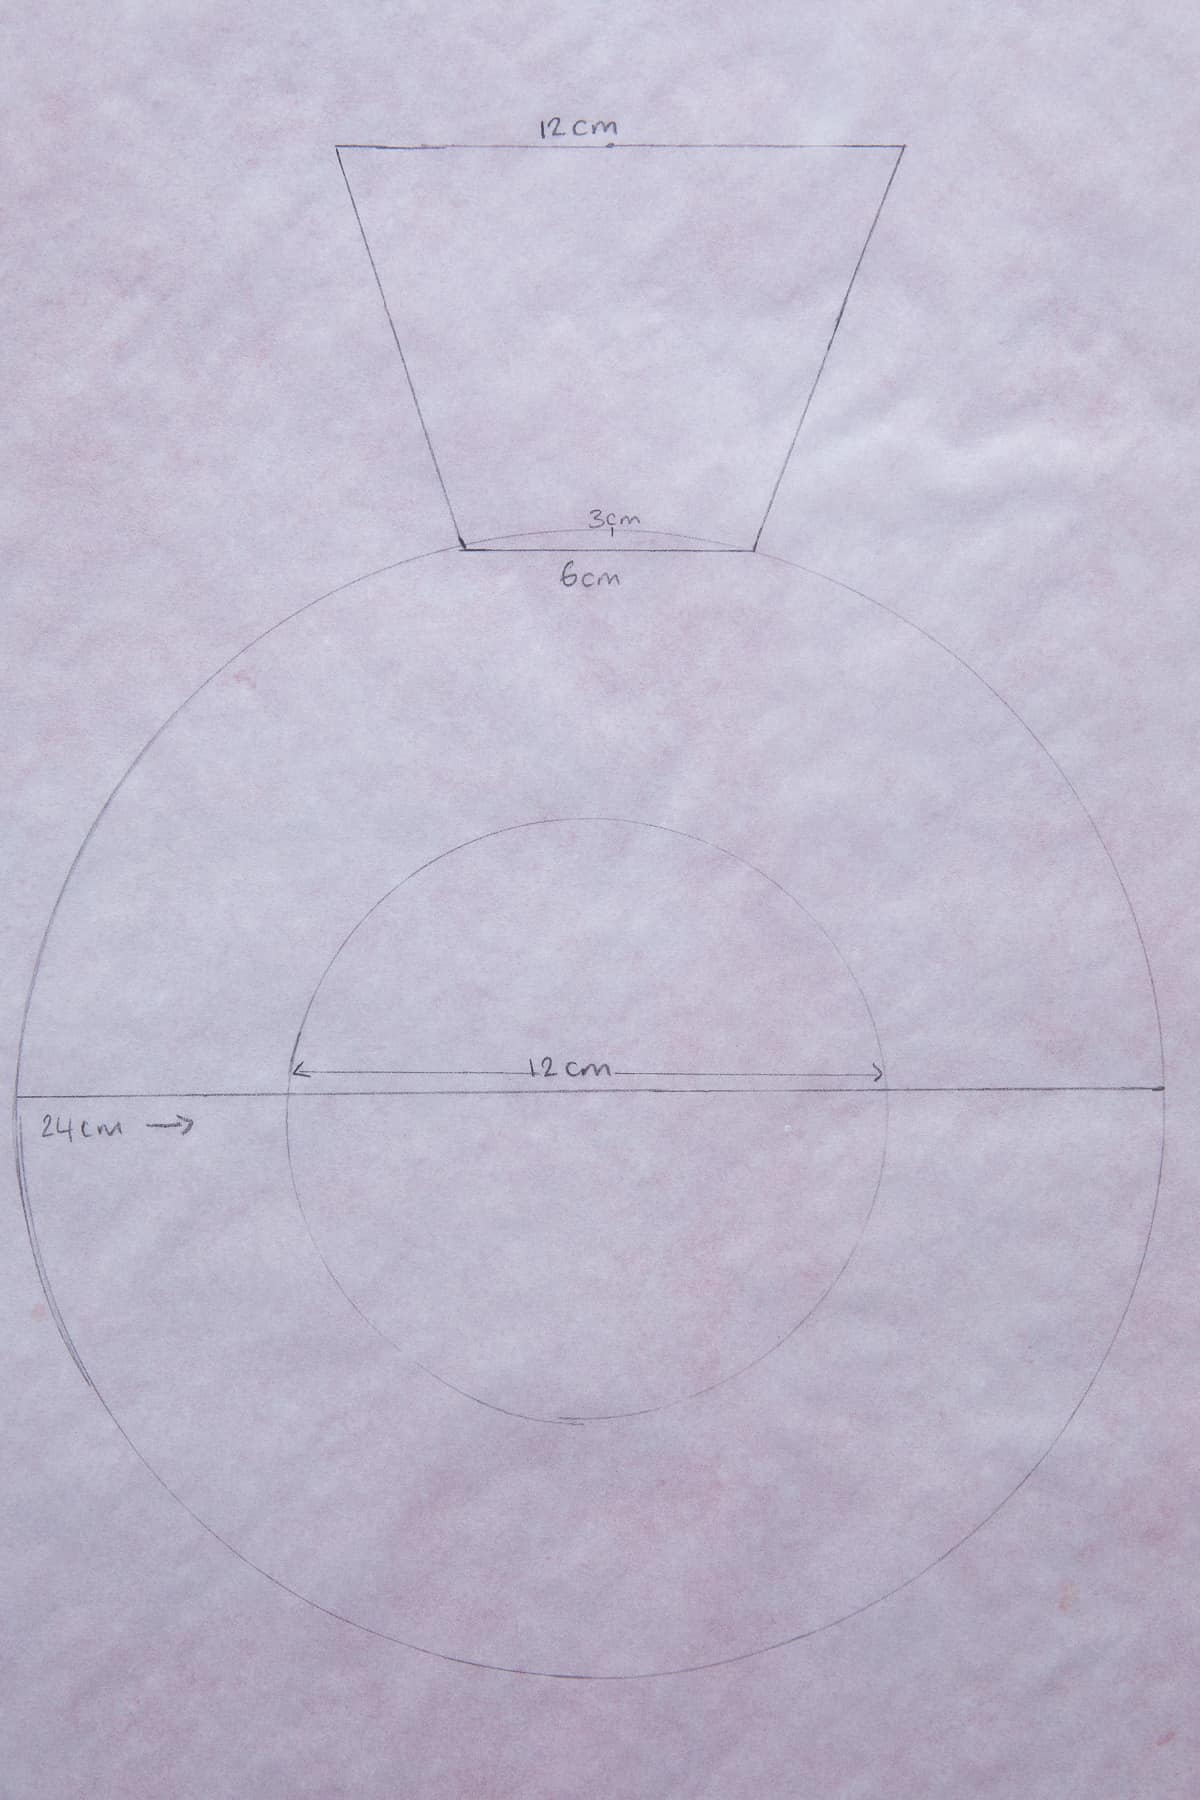 A diagram showing how to make a ring-shaped cream tart.